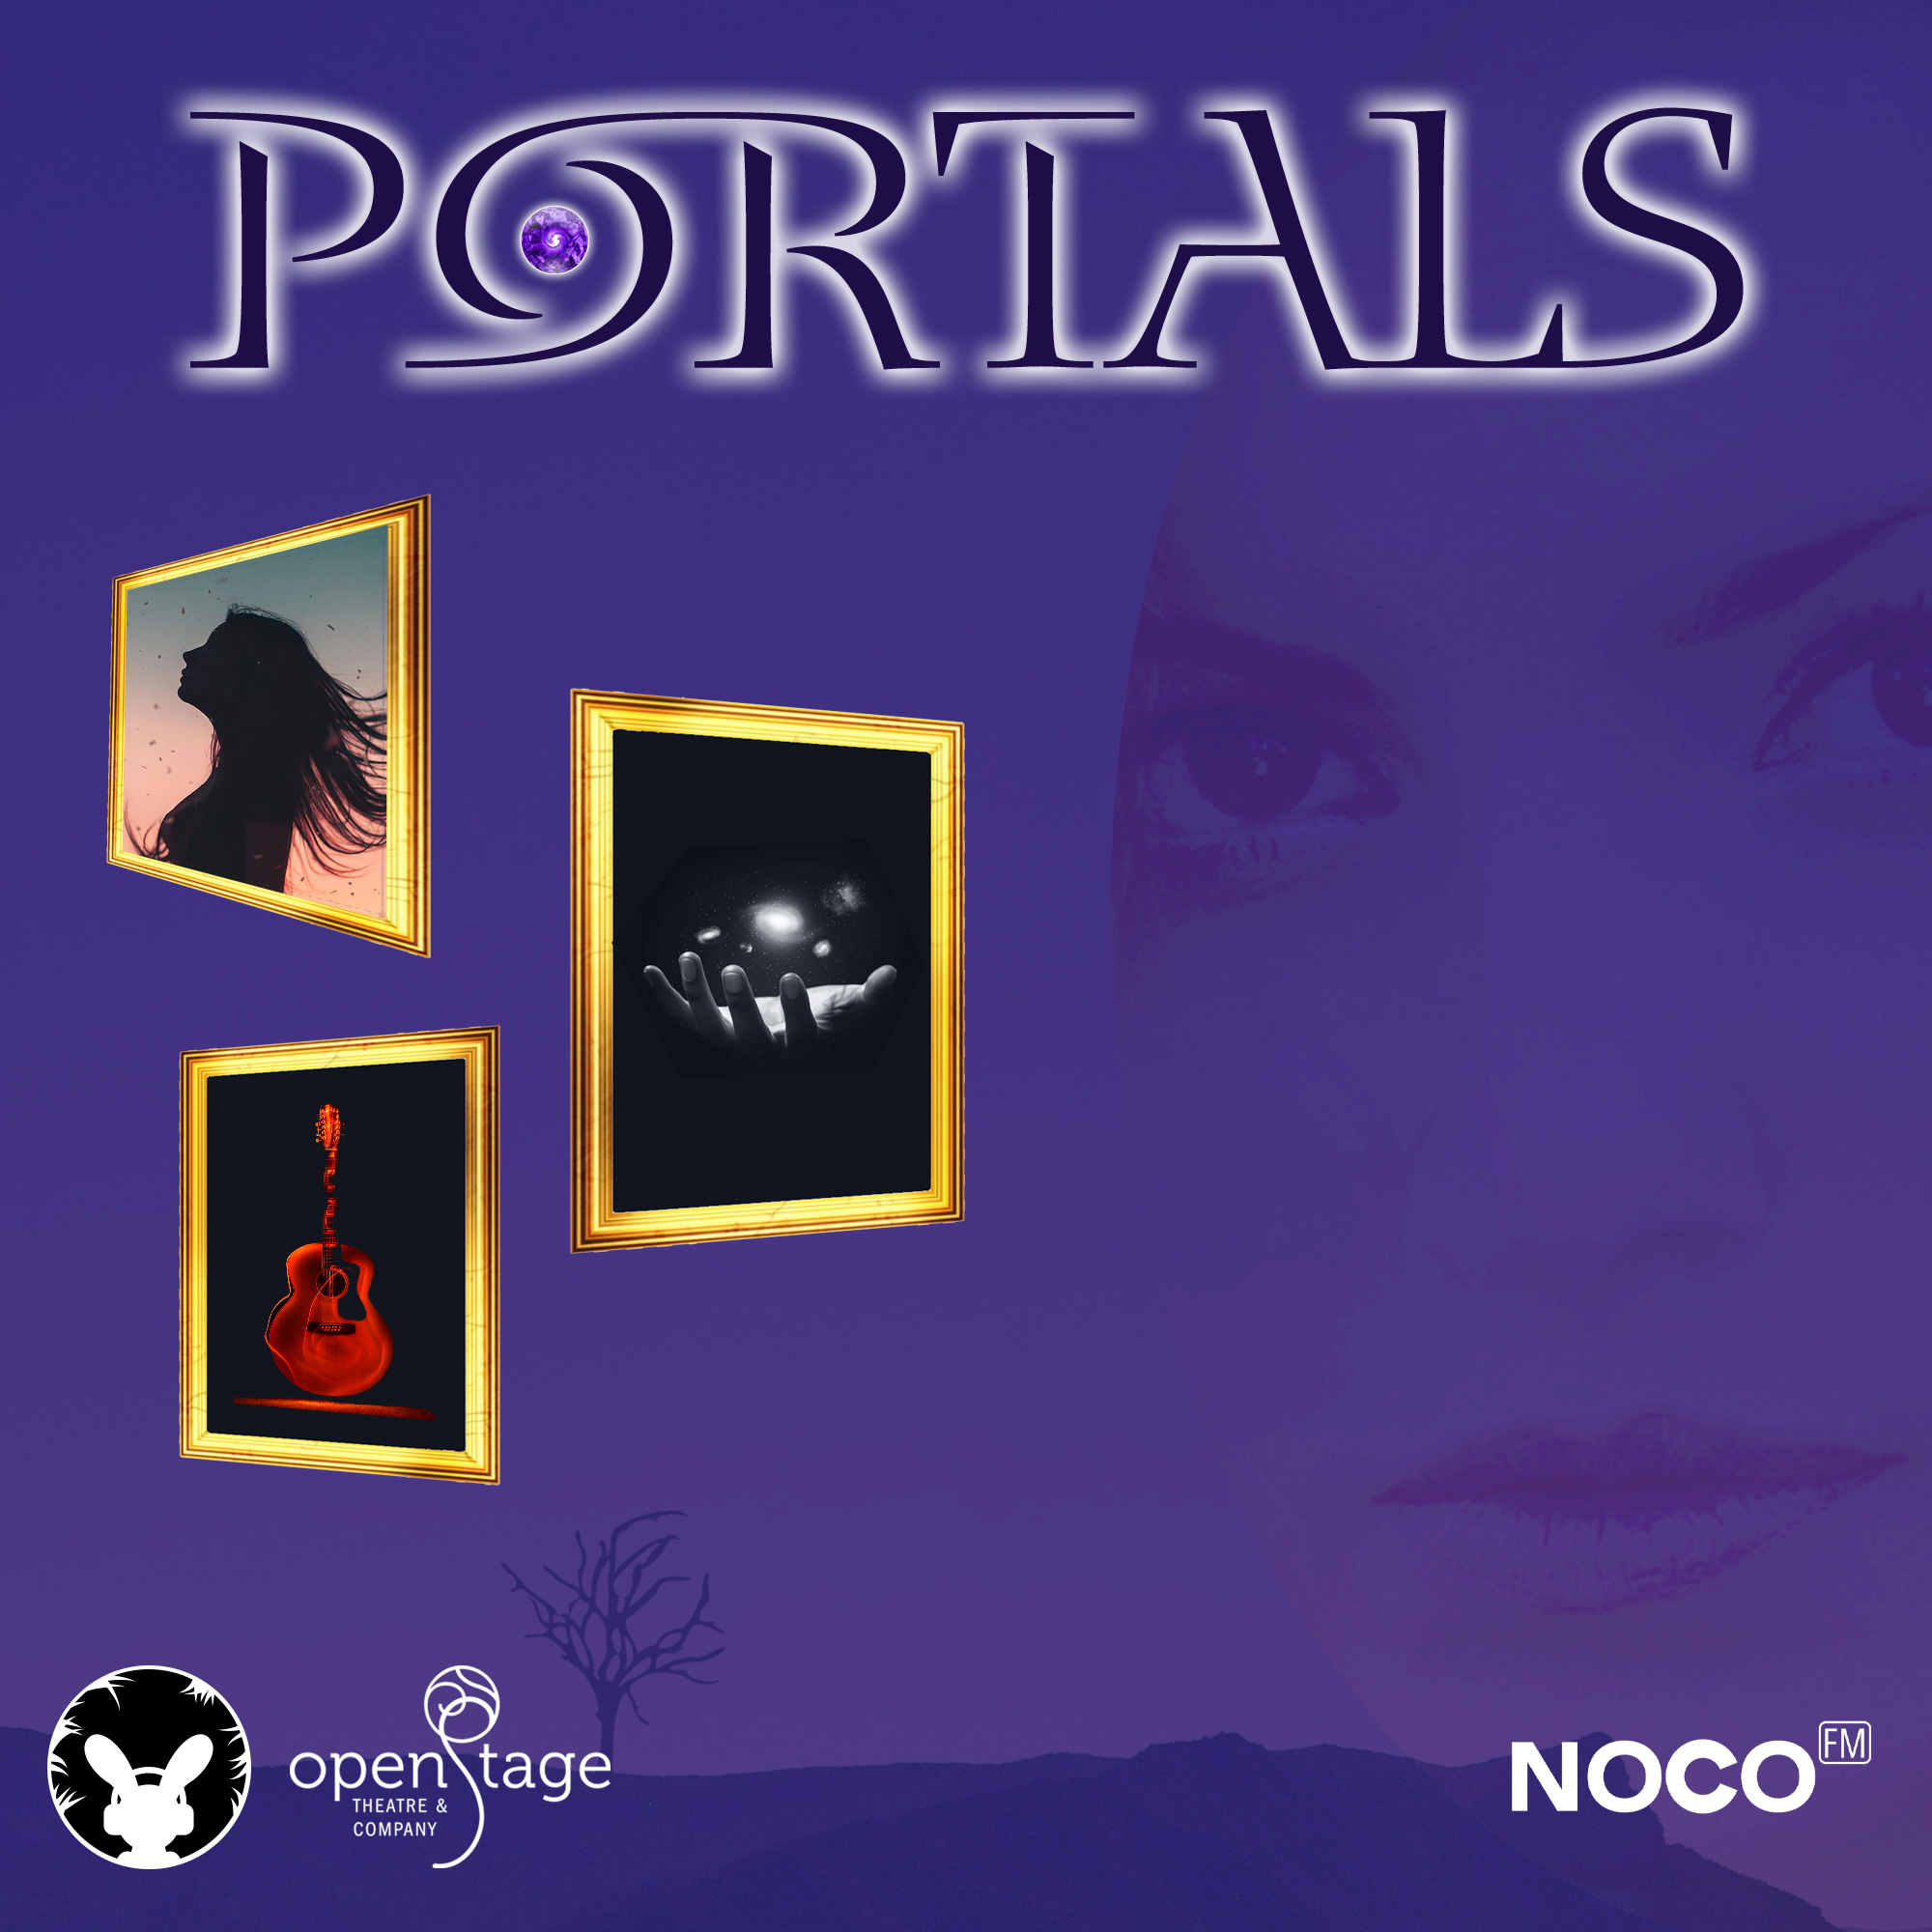 Portals Chapter 2: The Trans-Dimensional Teacup